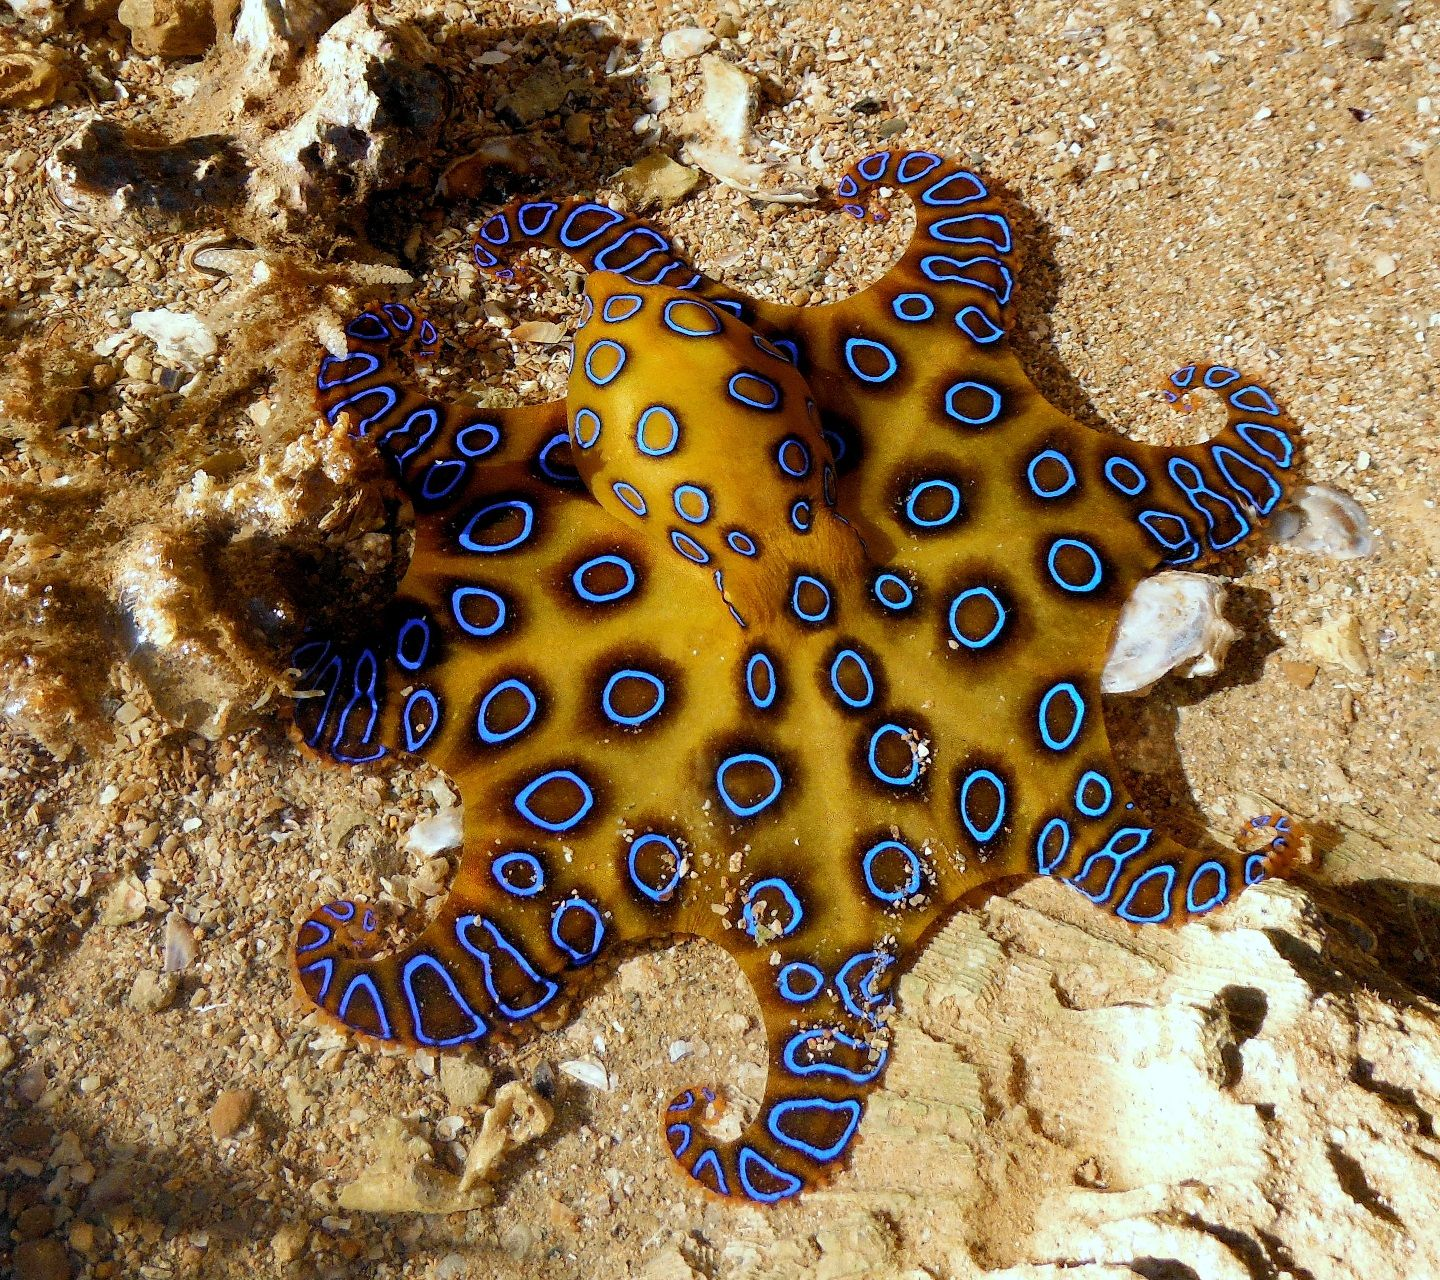 The blue-ringed octopus, despite its small size, carries enough ...